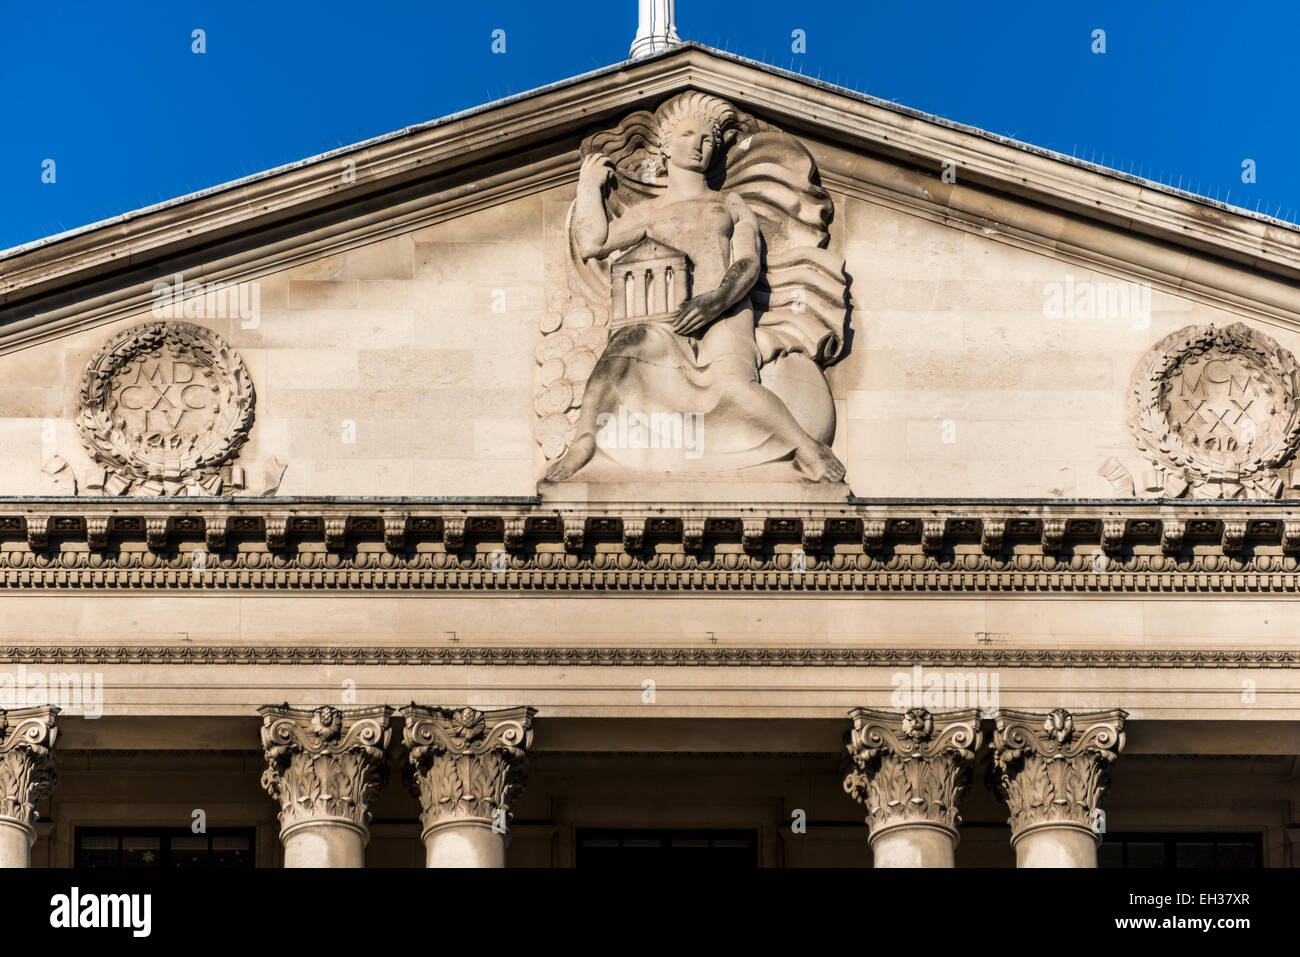 The top of the pediment over the Bank of England on Threadneedle Street in the City of London - Stock Image